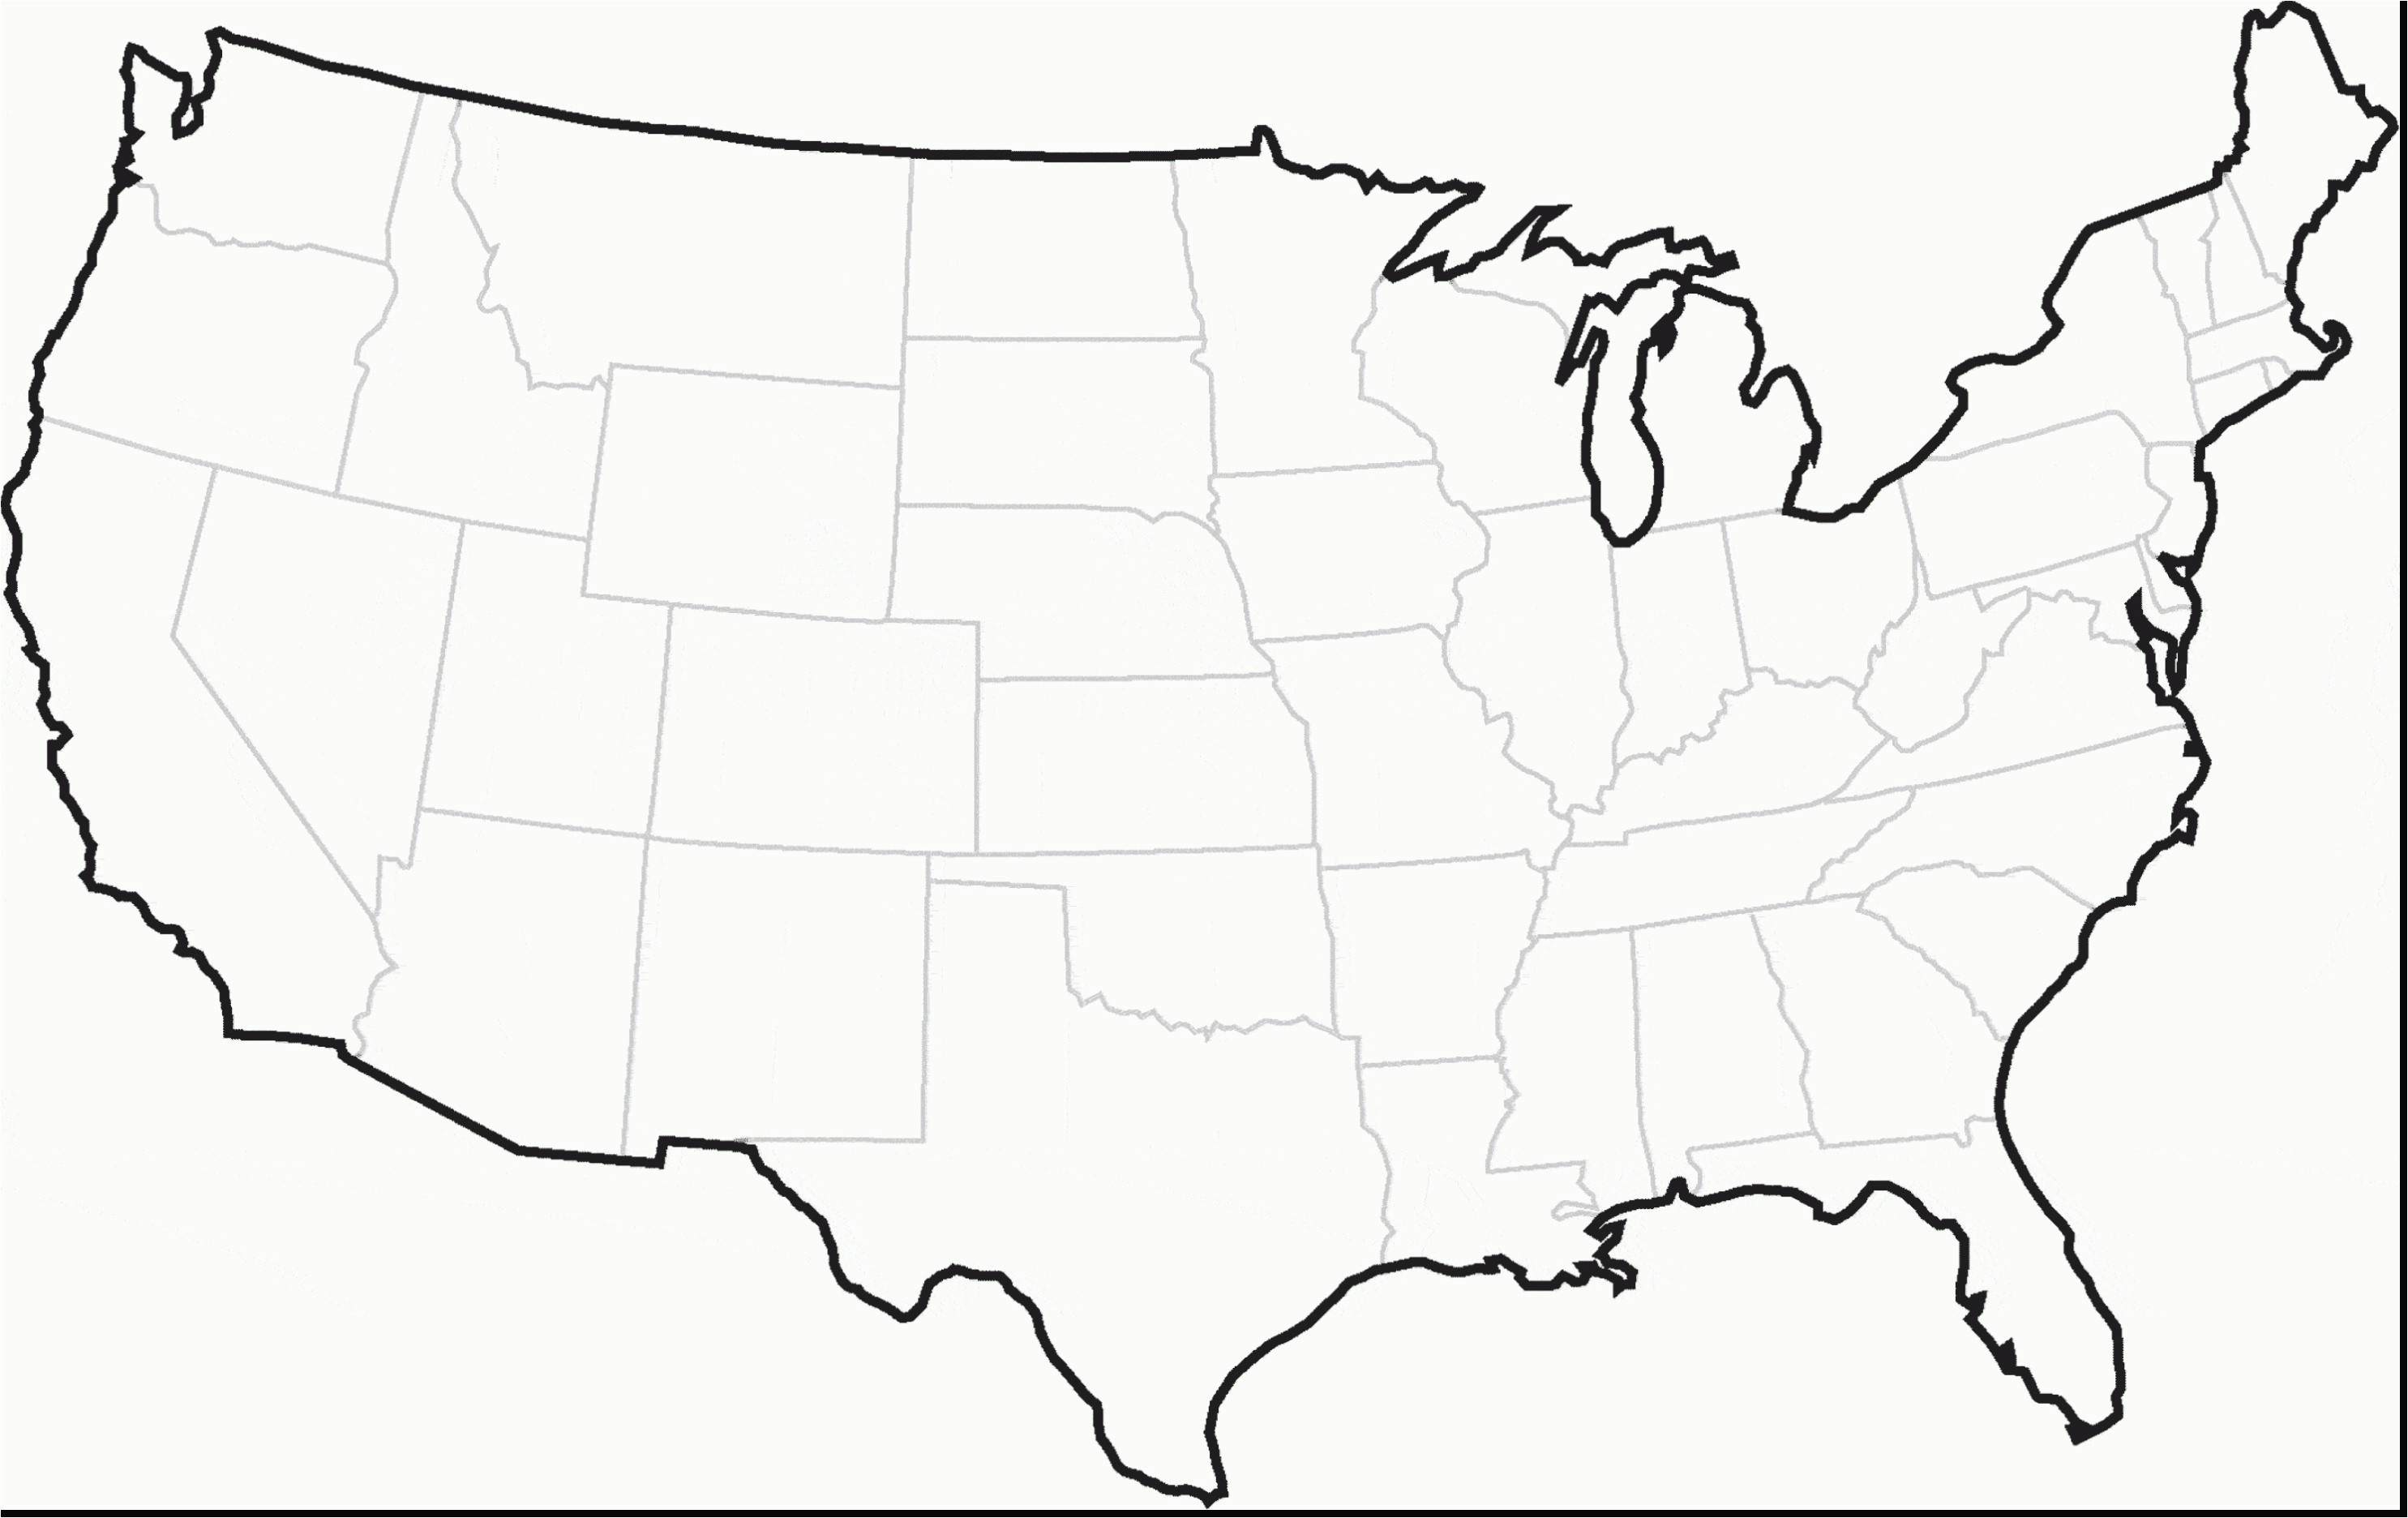 Outline Map the United States America New Printable United States Maps Outline and Capitals